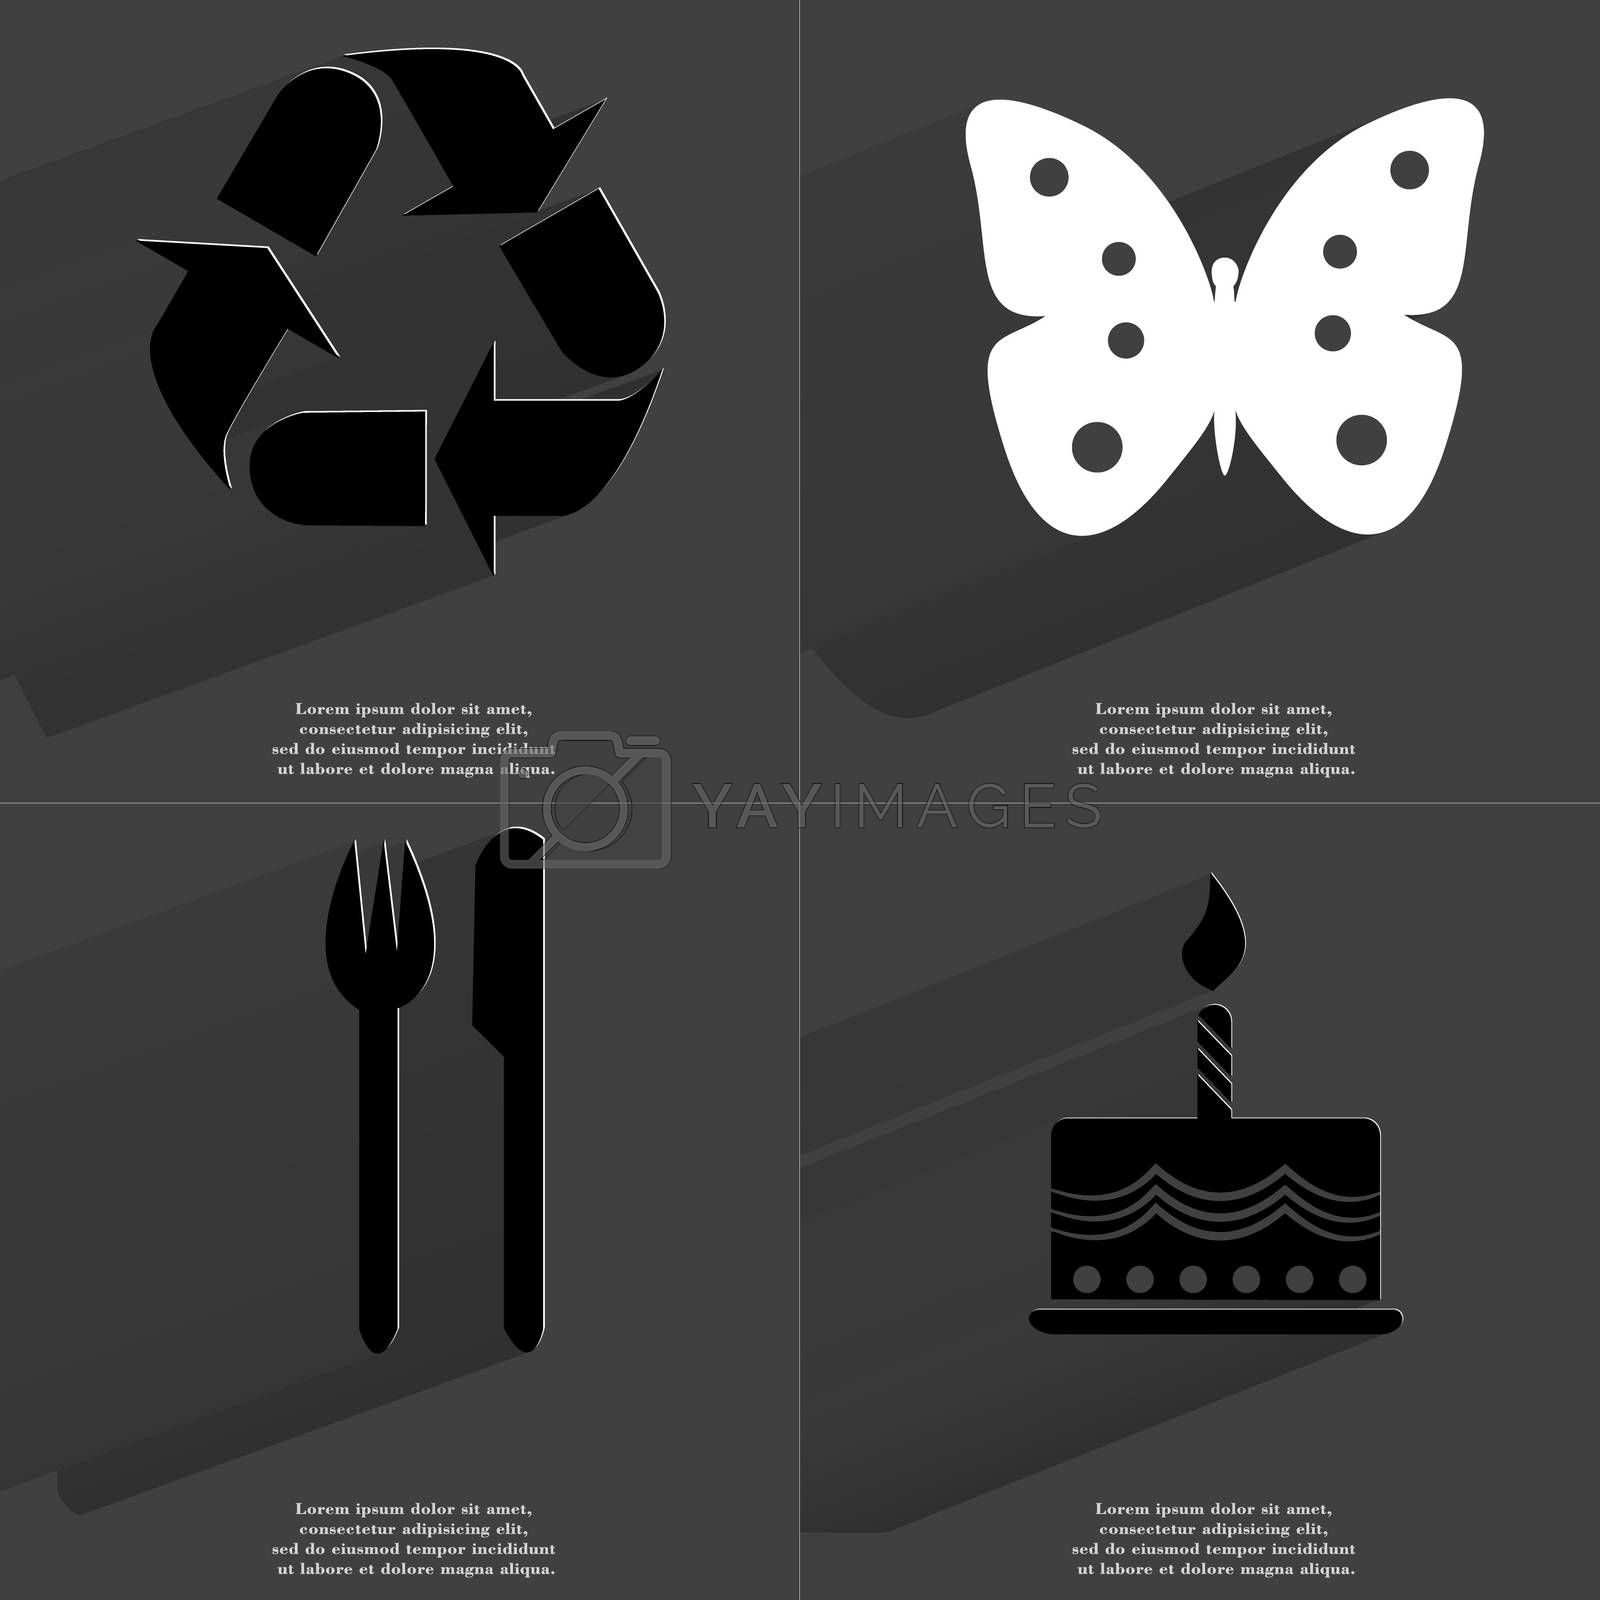 Royalty free image of Recycling icon, Butterfly, Fork and Knife, Cake. Symbols with long shadow. Flat design by serhii_lohvyniuk